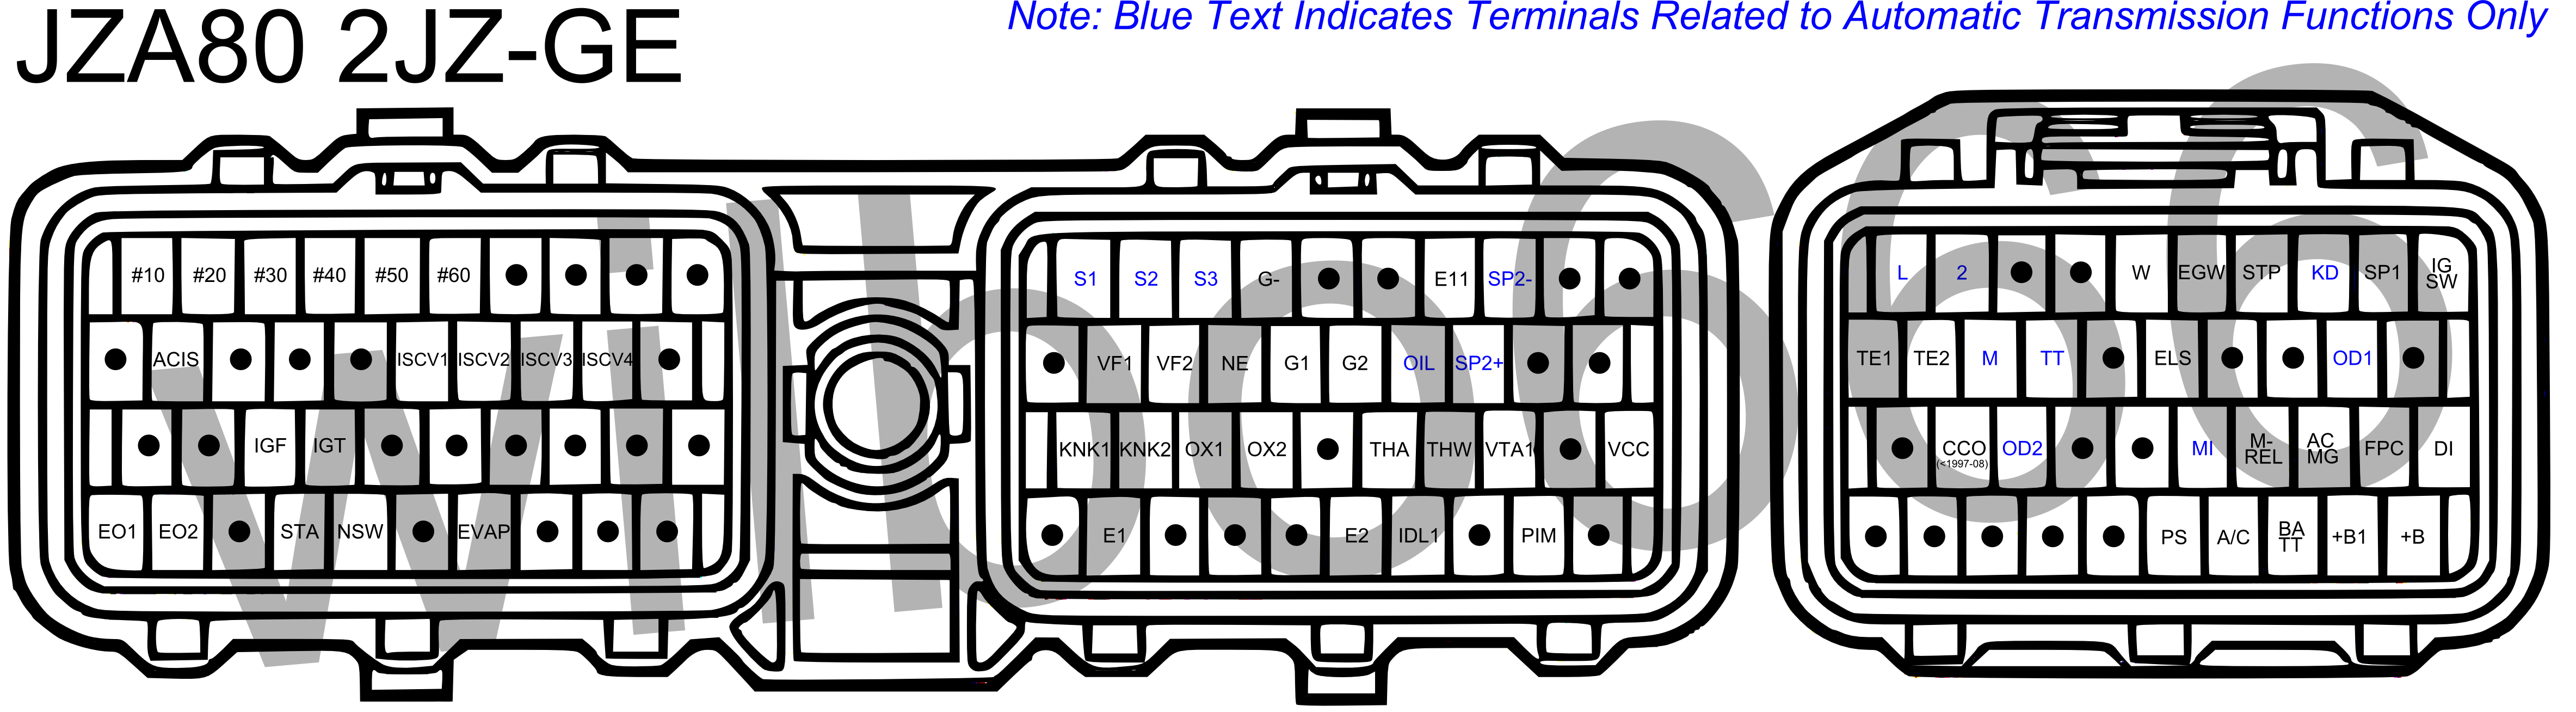 Note: Blue text indicates terminals related to automatic transmission  functions only.